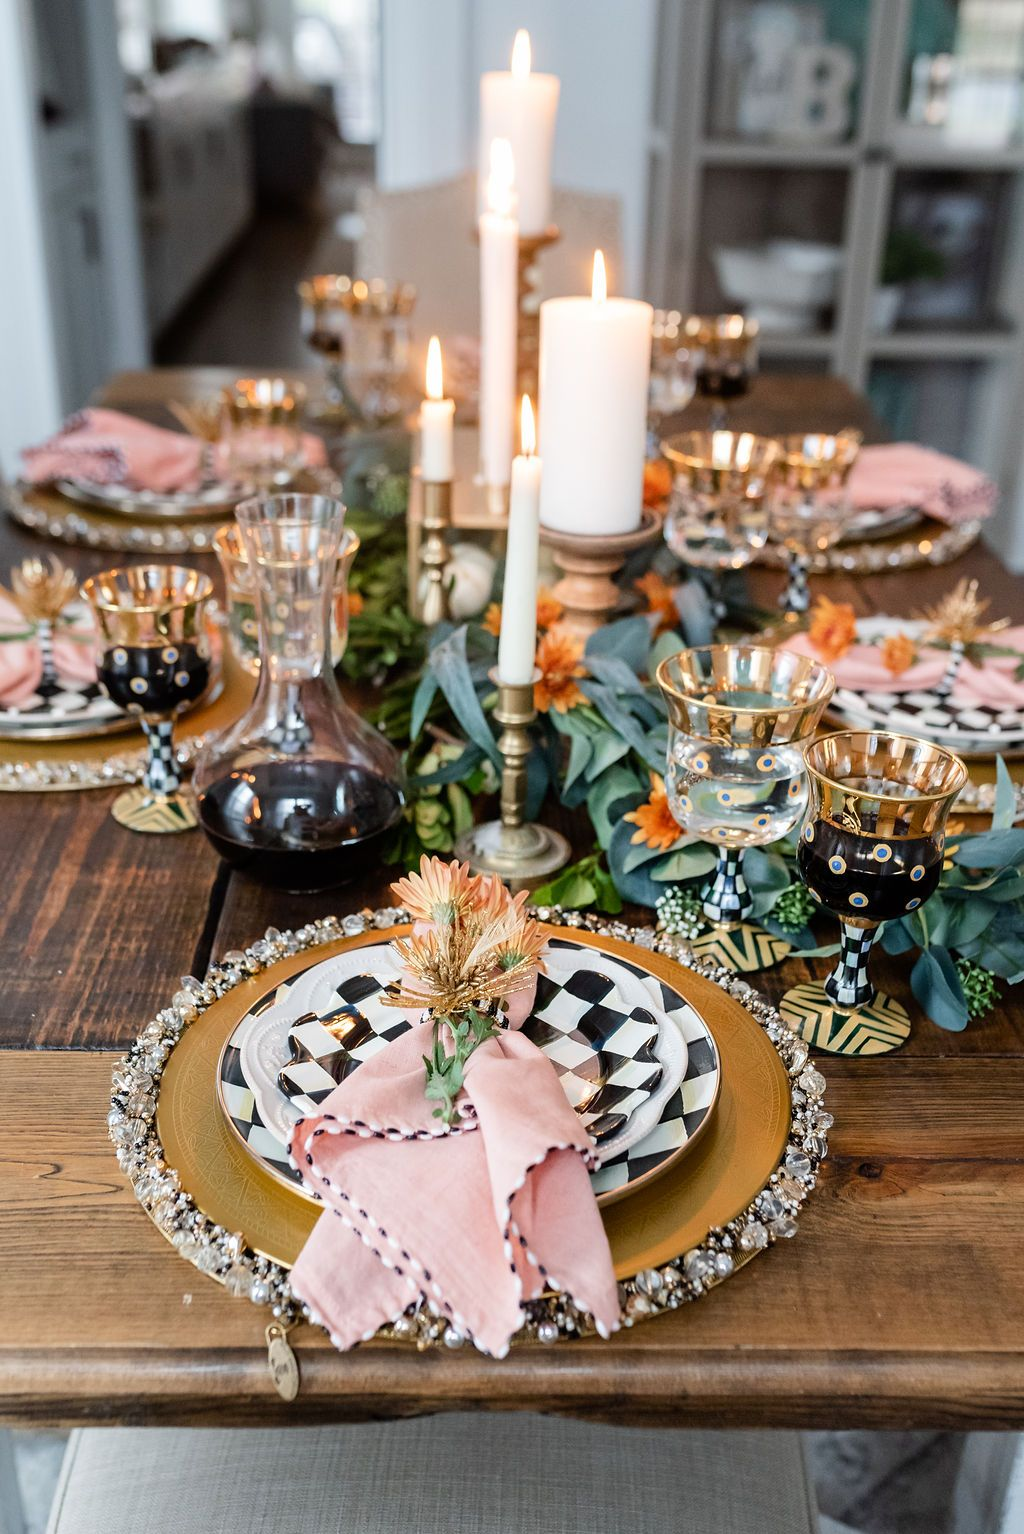 Thanksgiving 2018 With Mackenzie Childs Loverly Grey Holiday Tablescapes Mackenzie Childs Mckenzie And Childs